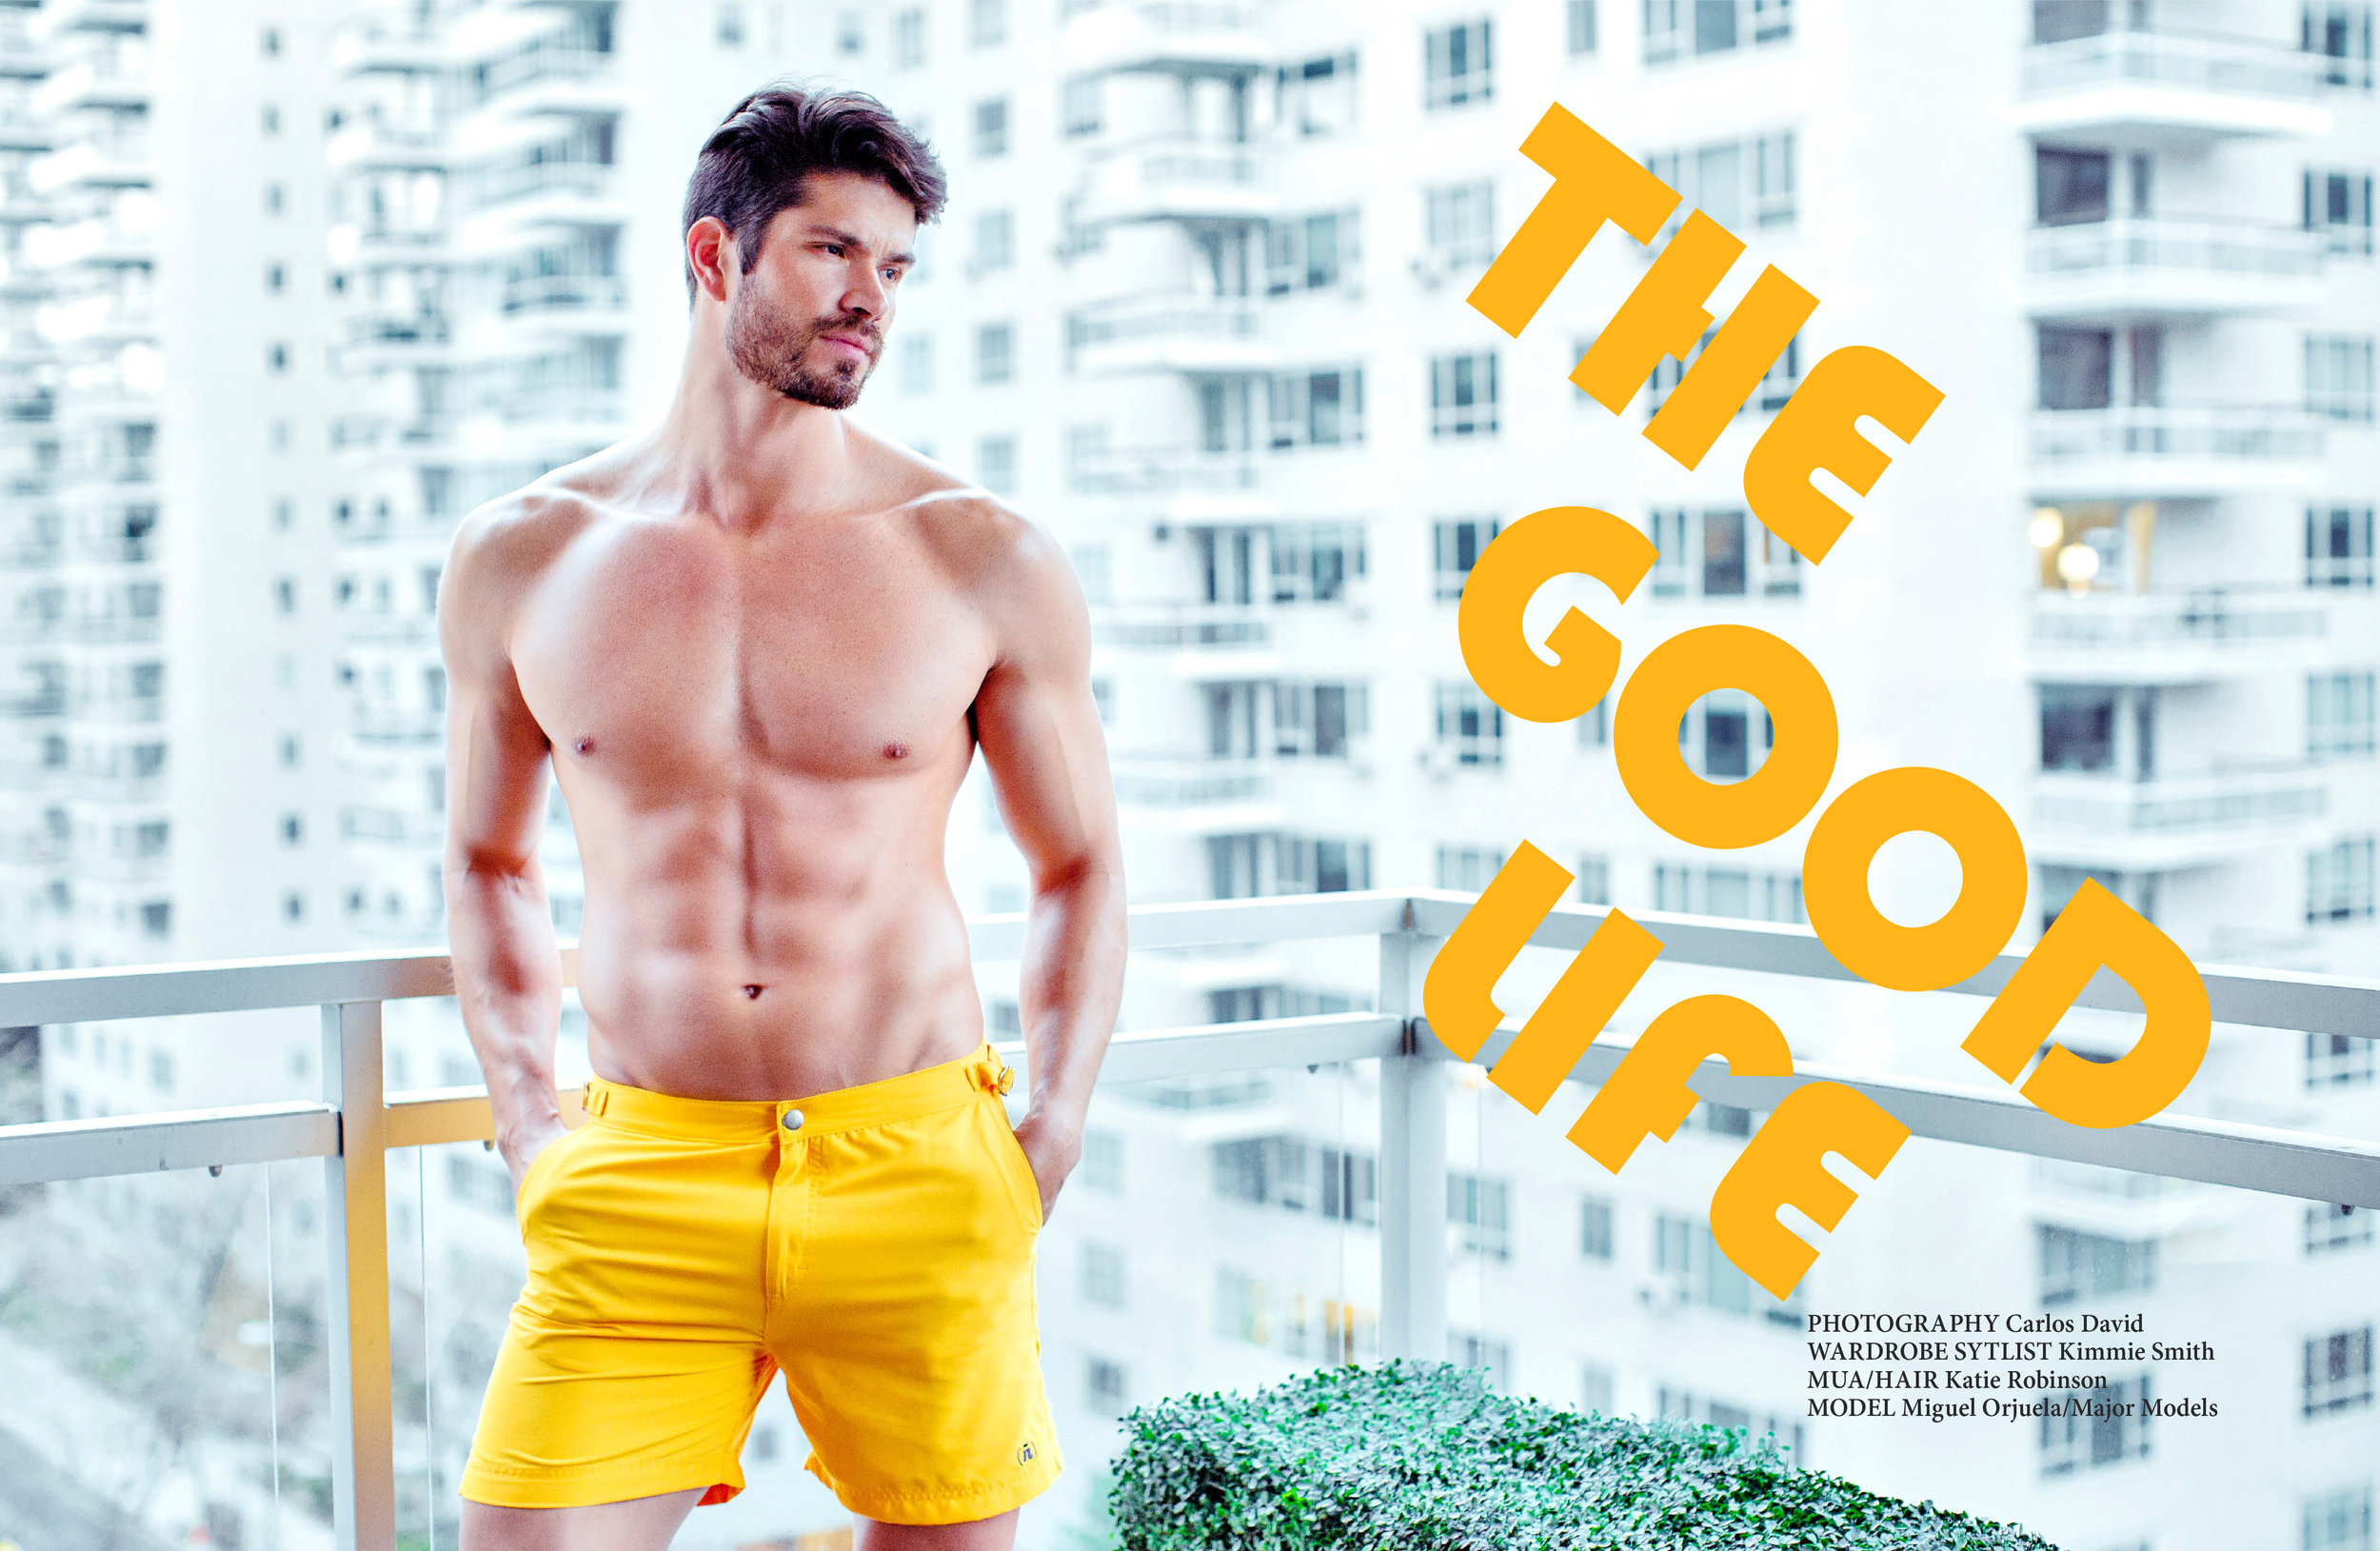 AM APR The Good Life-2.jpg